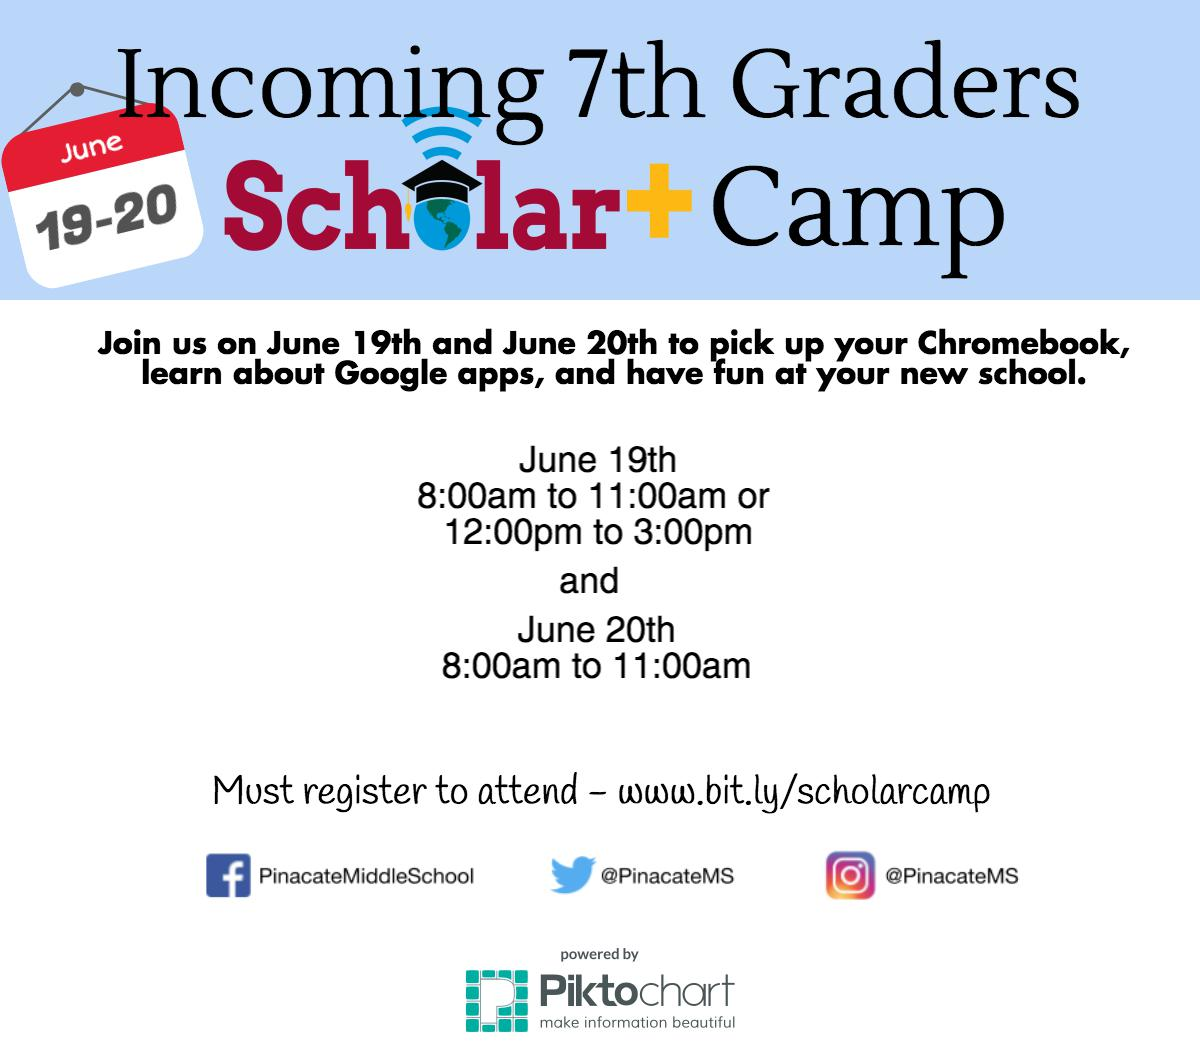 Image of Scholar+ Camp Flyer